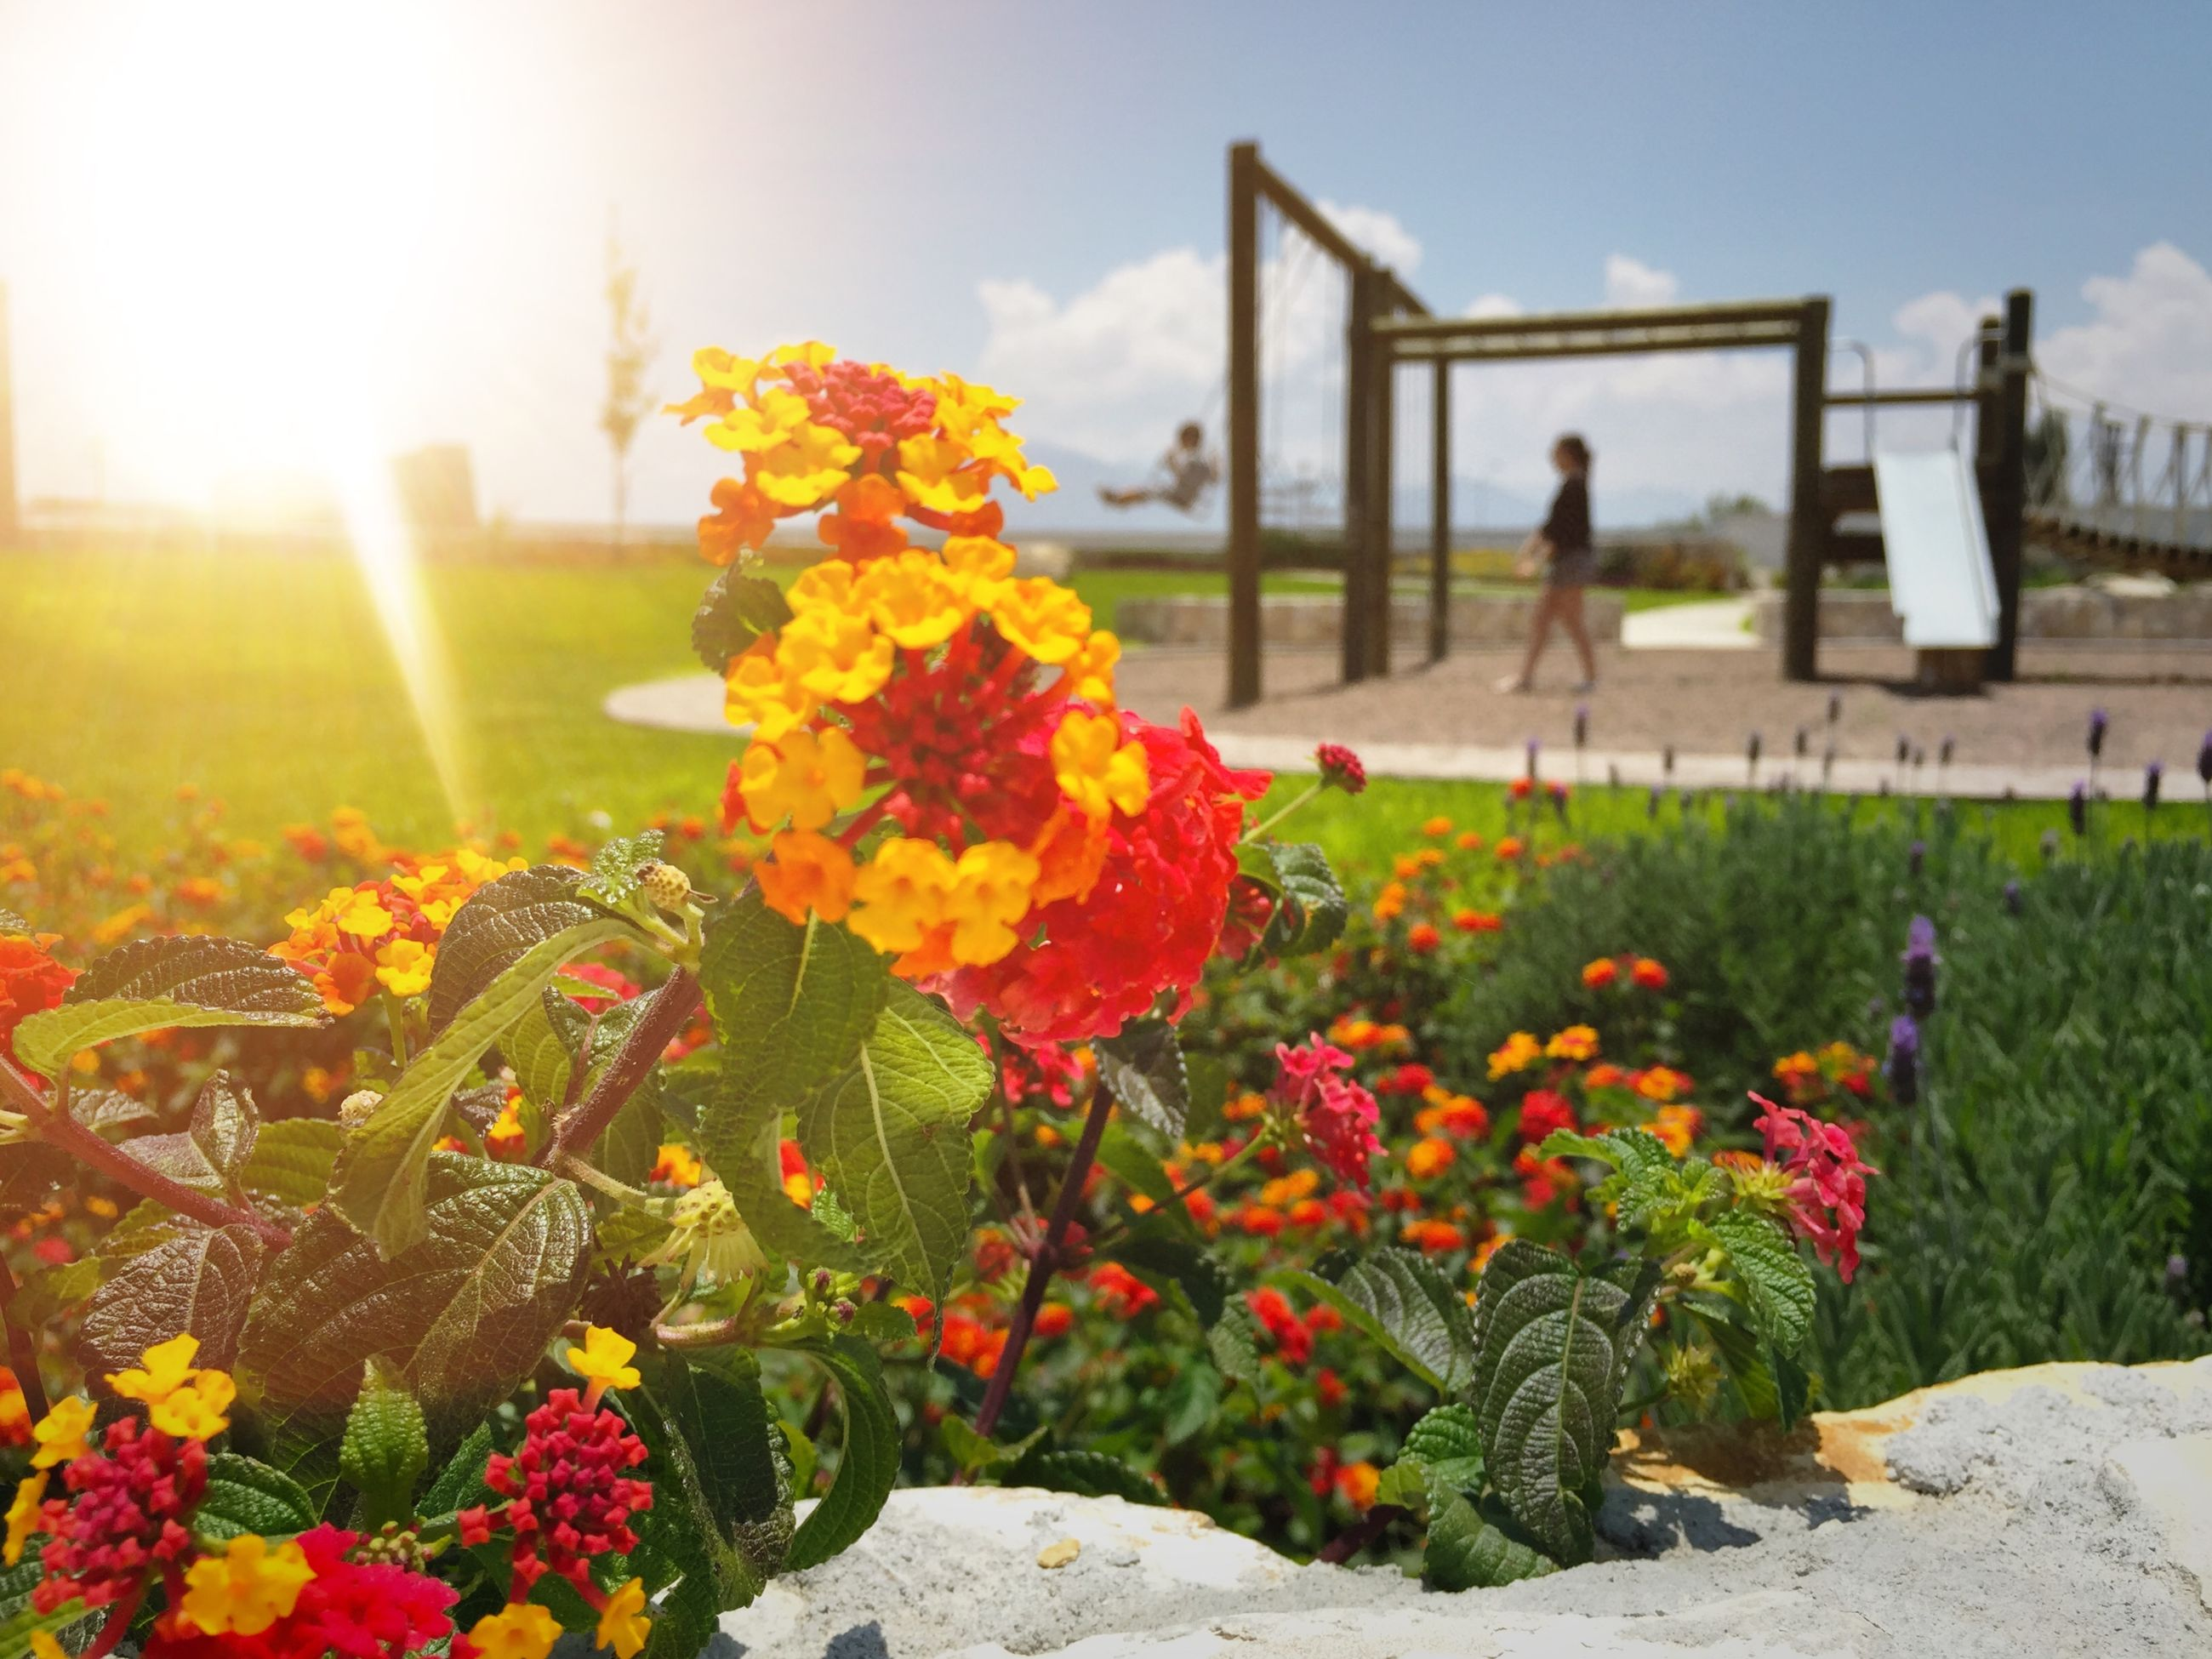 flower, freshness, fragility, petal, plant, growth, blooming, beauty in nature, flower head, sunlight, nature, sky, sunbeam, in bloom, field, focus on foreground, built structure, yellow, sun, lens flare